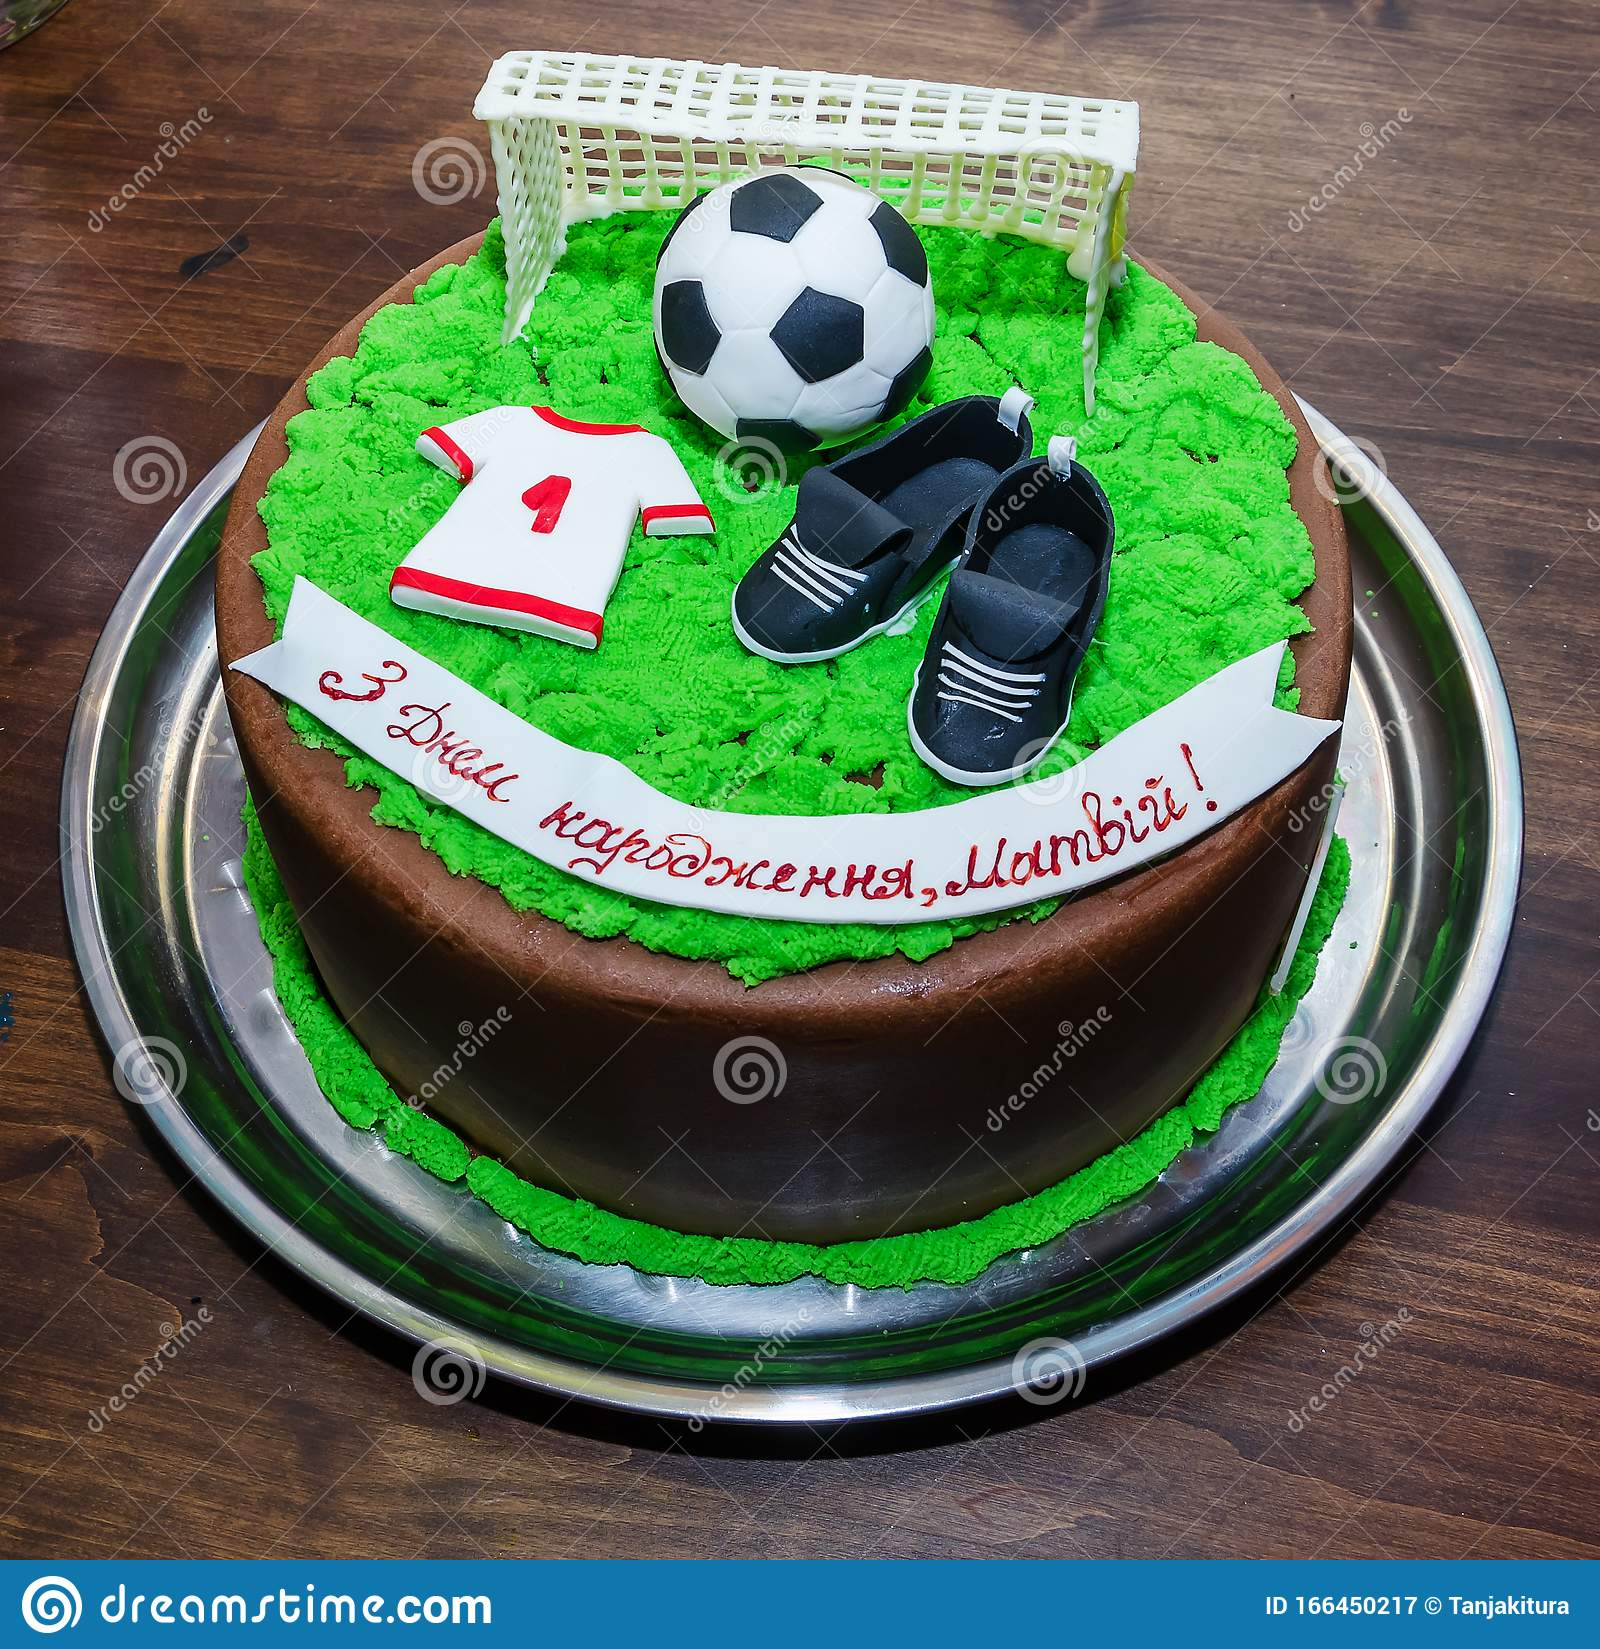 Surprising Beautiful Birthday Cake Cake For A Soccer Player Stock Image Funny Birthday Cards Online Inifodamsfinfo